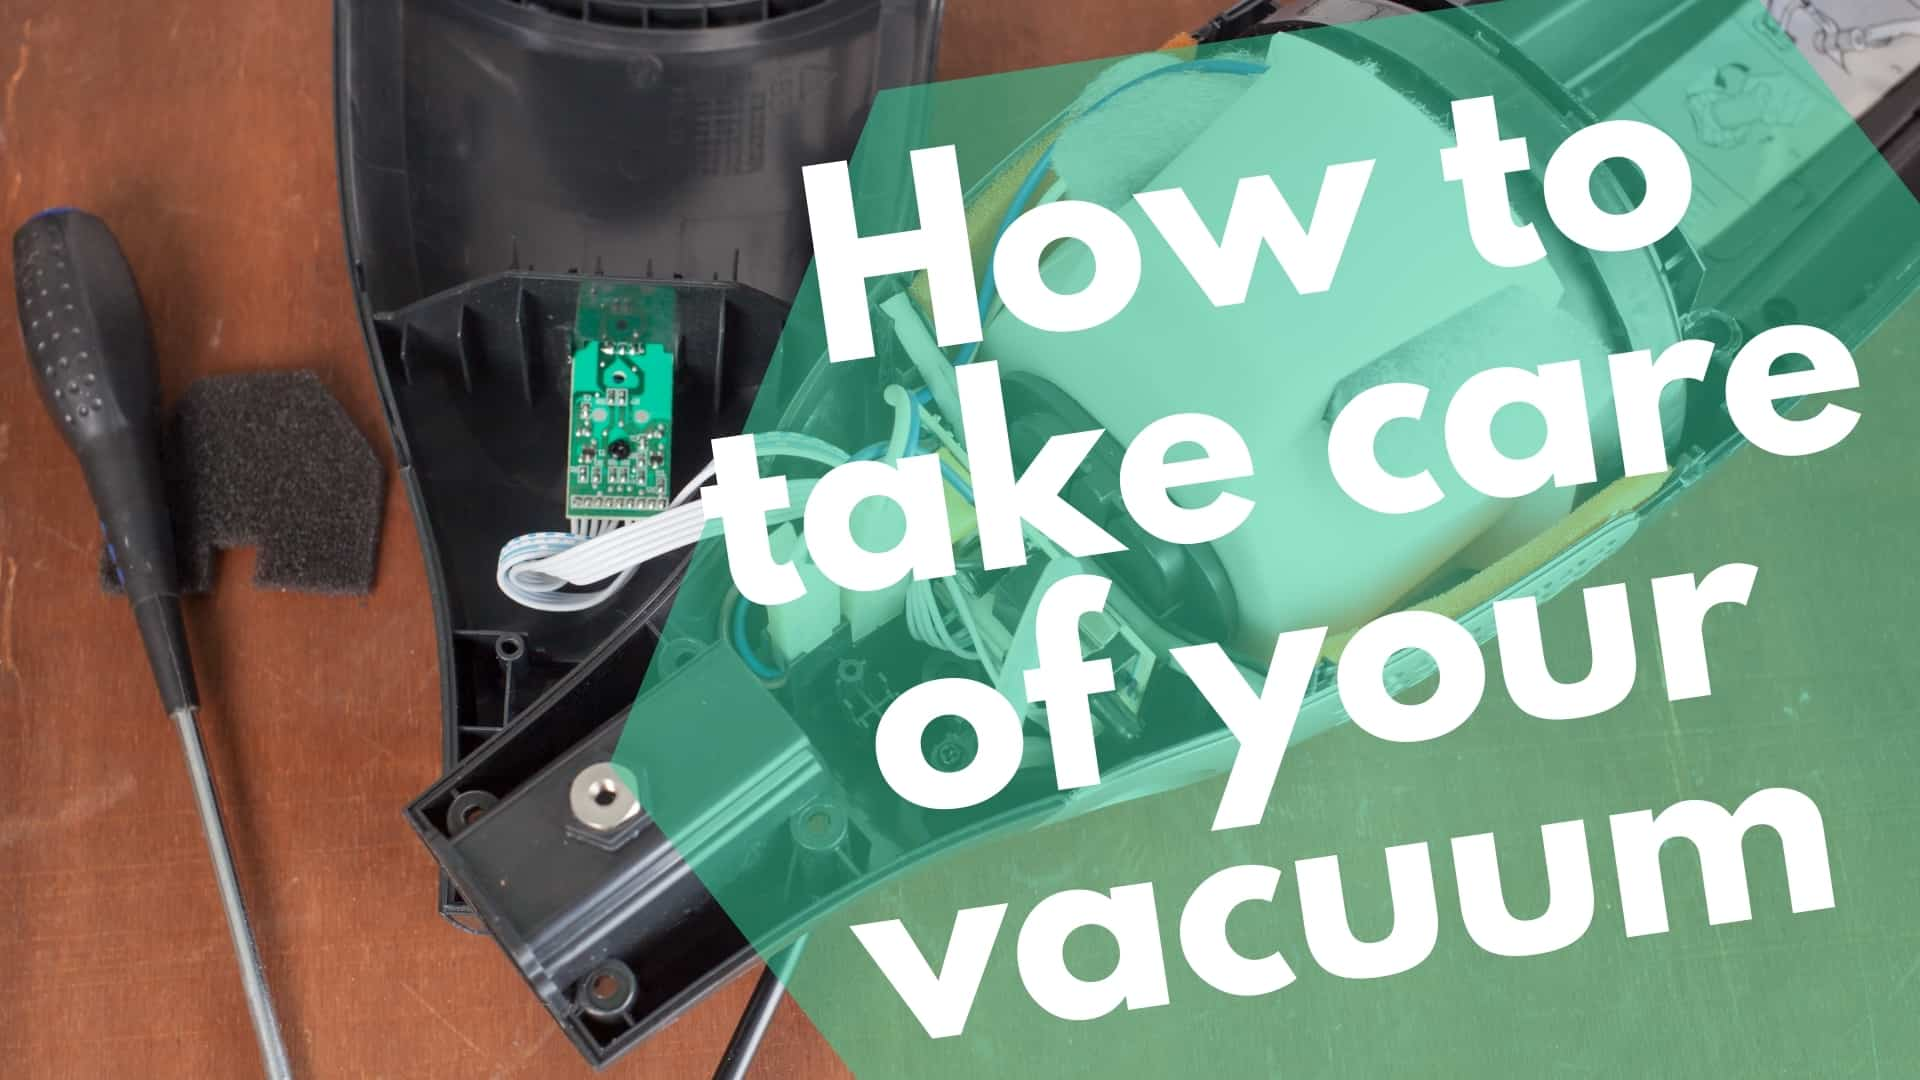 How to take care of your vacuum cleaner